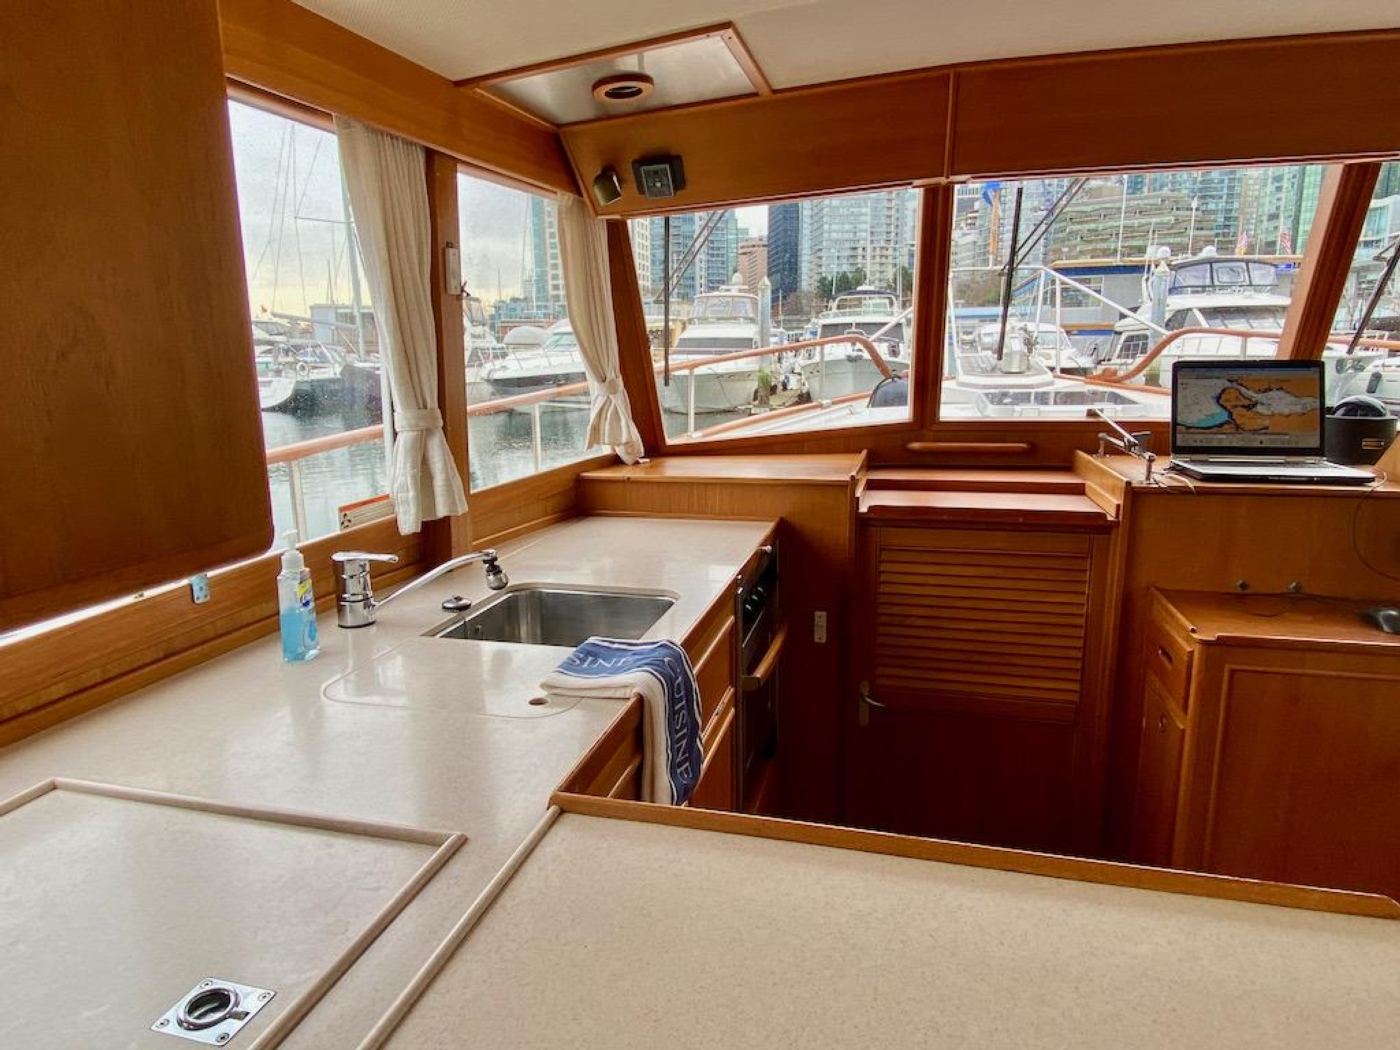 1998 Grand Banks 42 Classic, Galley 4